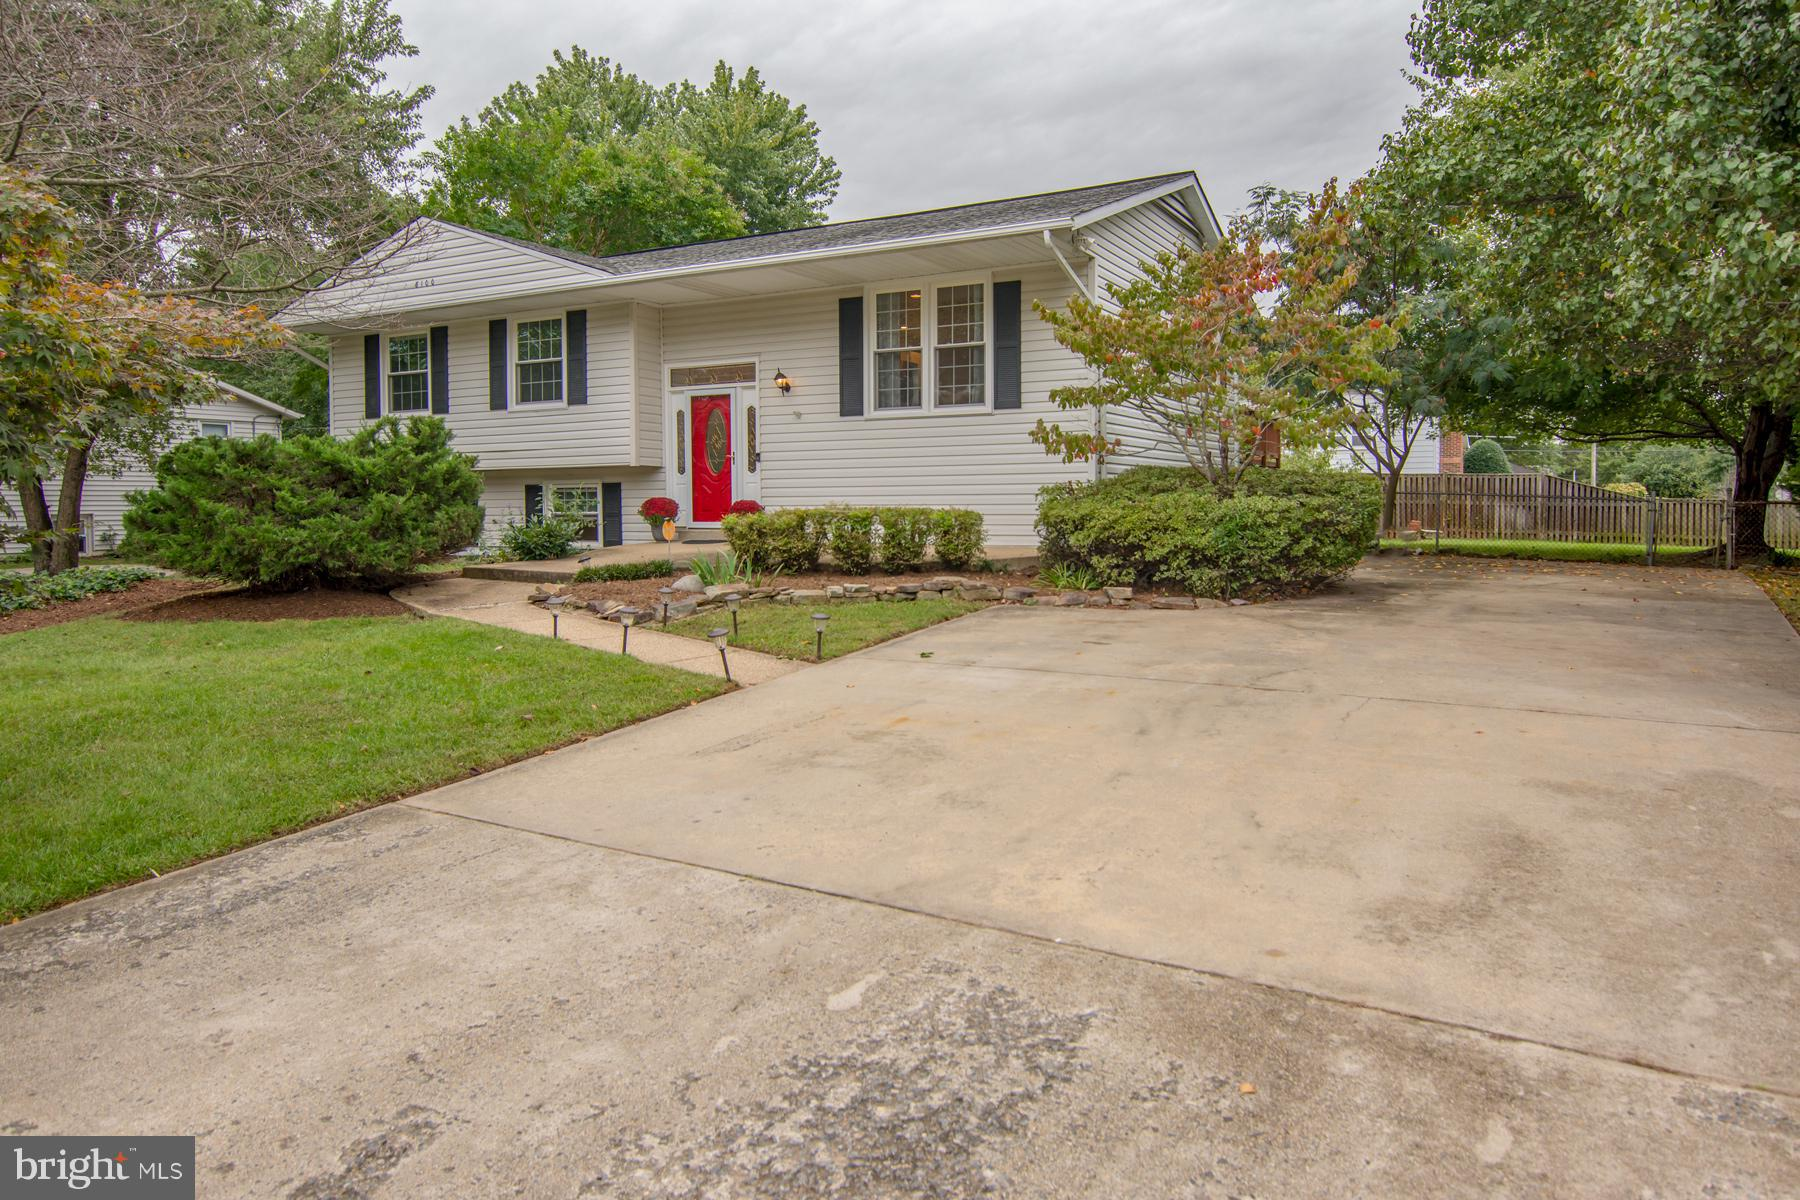 SPACIOUS SPLIT FOYER ON LARGE, WELL MANICURED CORNER LOT. RECENTLY UPDATED KITCHEN AND BATHROOMS, GORGEOUS REFINISHED HARDWOOD FLOORS ON MAIN LEVEL. AN ENTERTAINER'S DECK OVERLOOKING LARGE, FENCED BACKYARD W/LARGE SHED FOR STORAGE. BASEMENT HAS MULTIPLE BONUS ROOMS ALONG WITH A GUEST BEDROOM. EXTRA LARGE DRIVEWAY WITH AMPLE PARKING, IN GROUND SPRINKLER SYSTEM, EASY ACCESS TO ROUTE 1 & FT. BELVOIR.